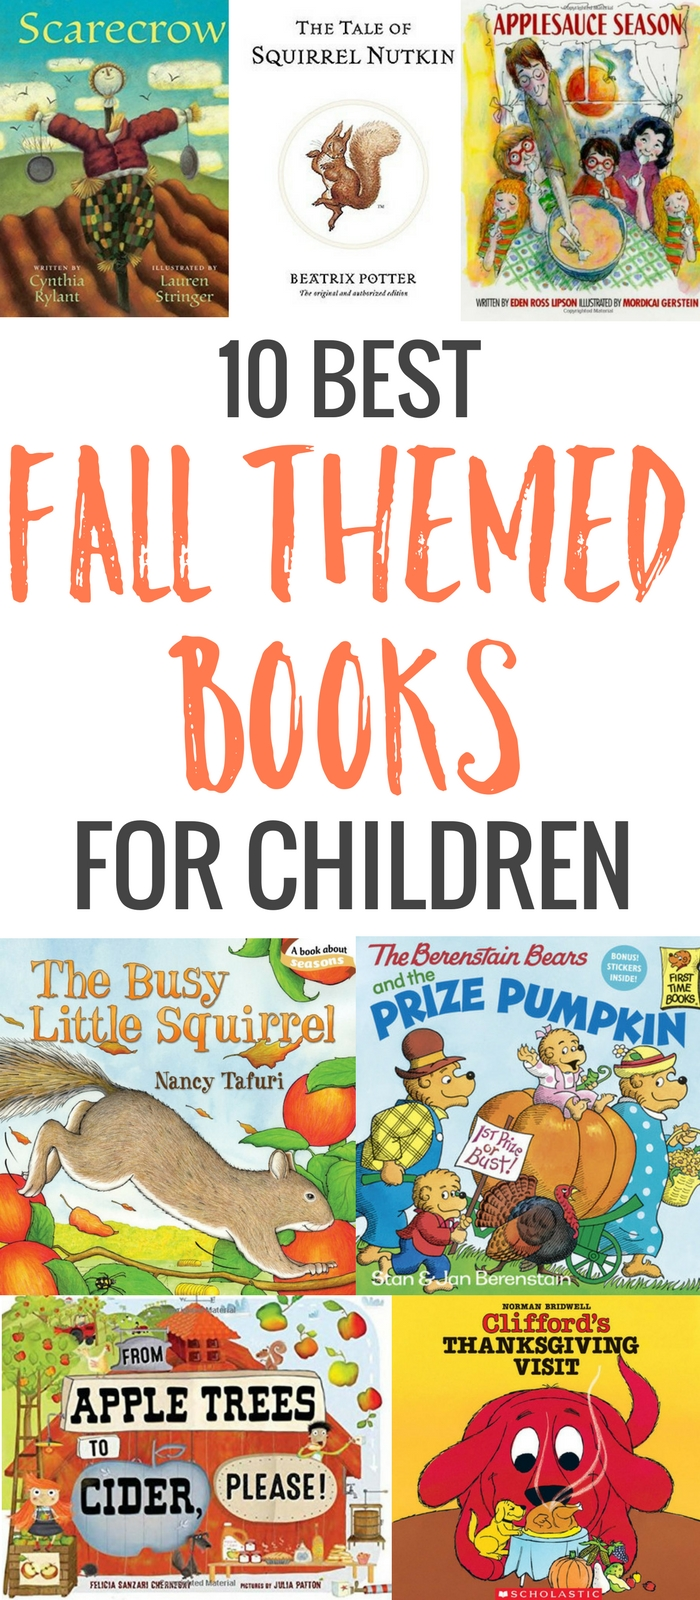 I'm not sure I've ever met a picture book I didn't like! I have books for any reason and any season in my personal library -- even fall books for children.